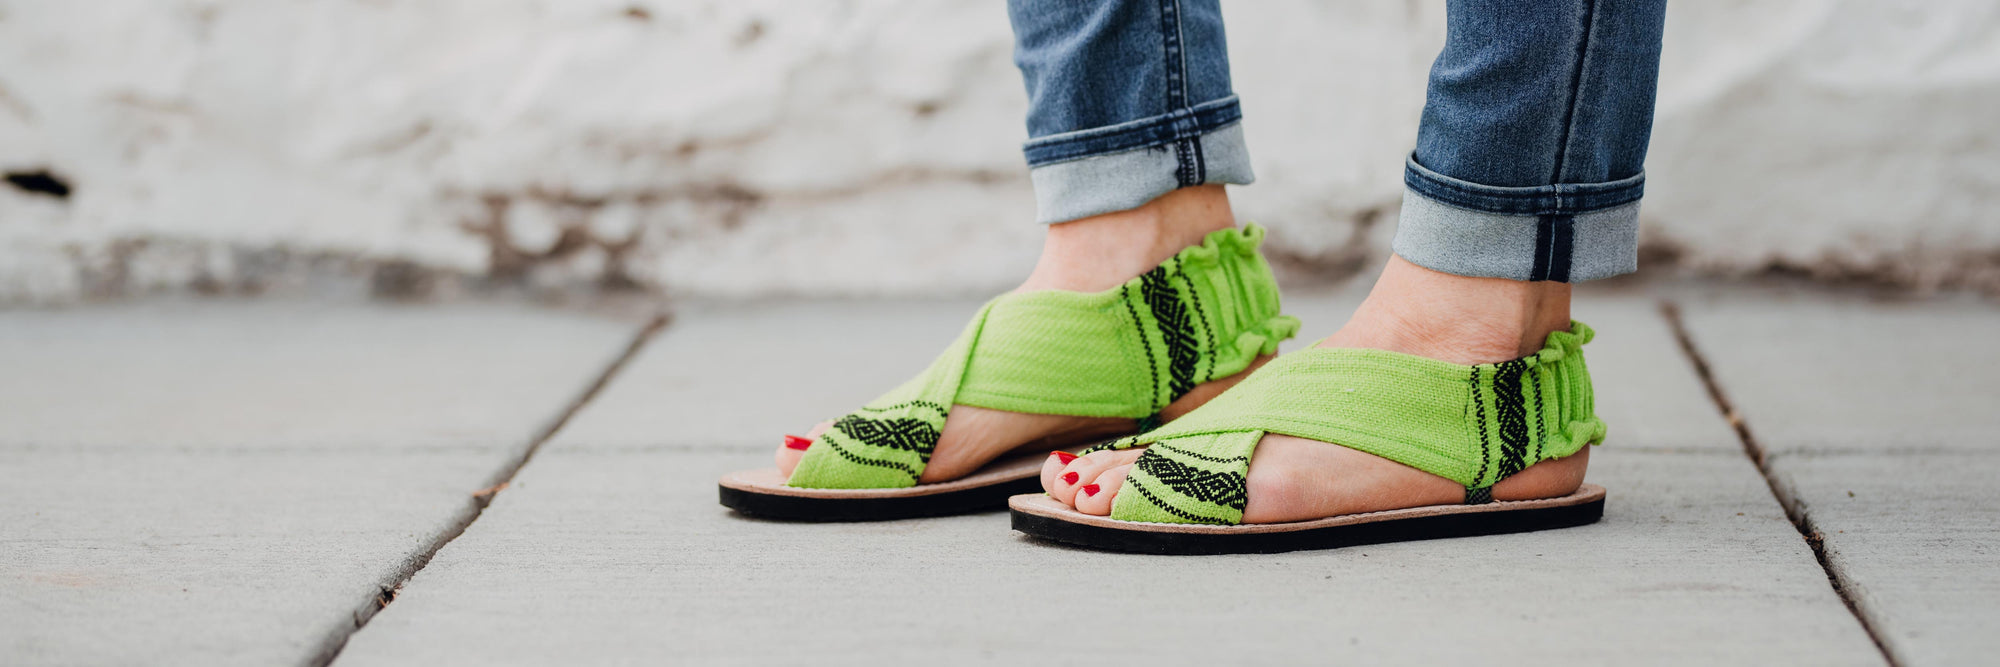 Lime green sandals that were handmade in Oaxaca, Mexico.